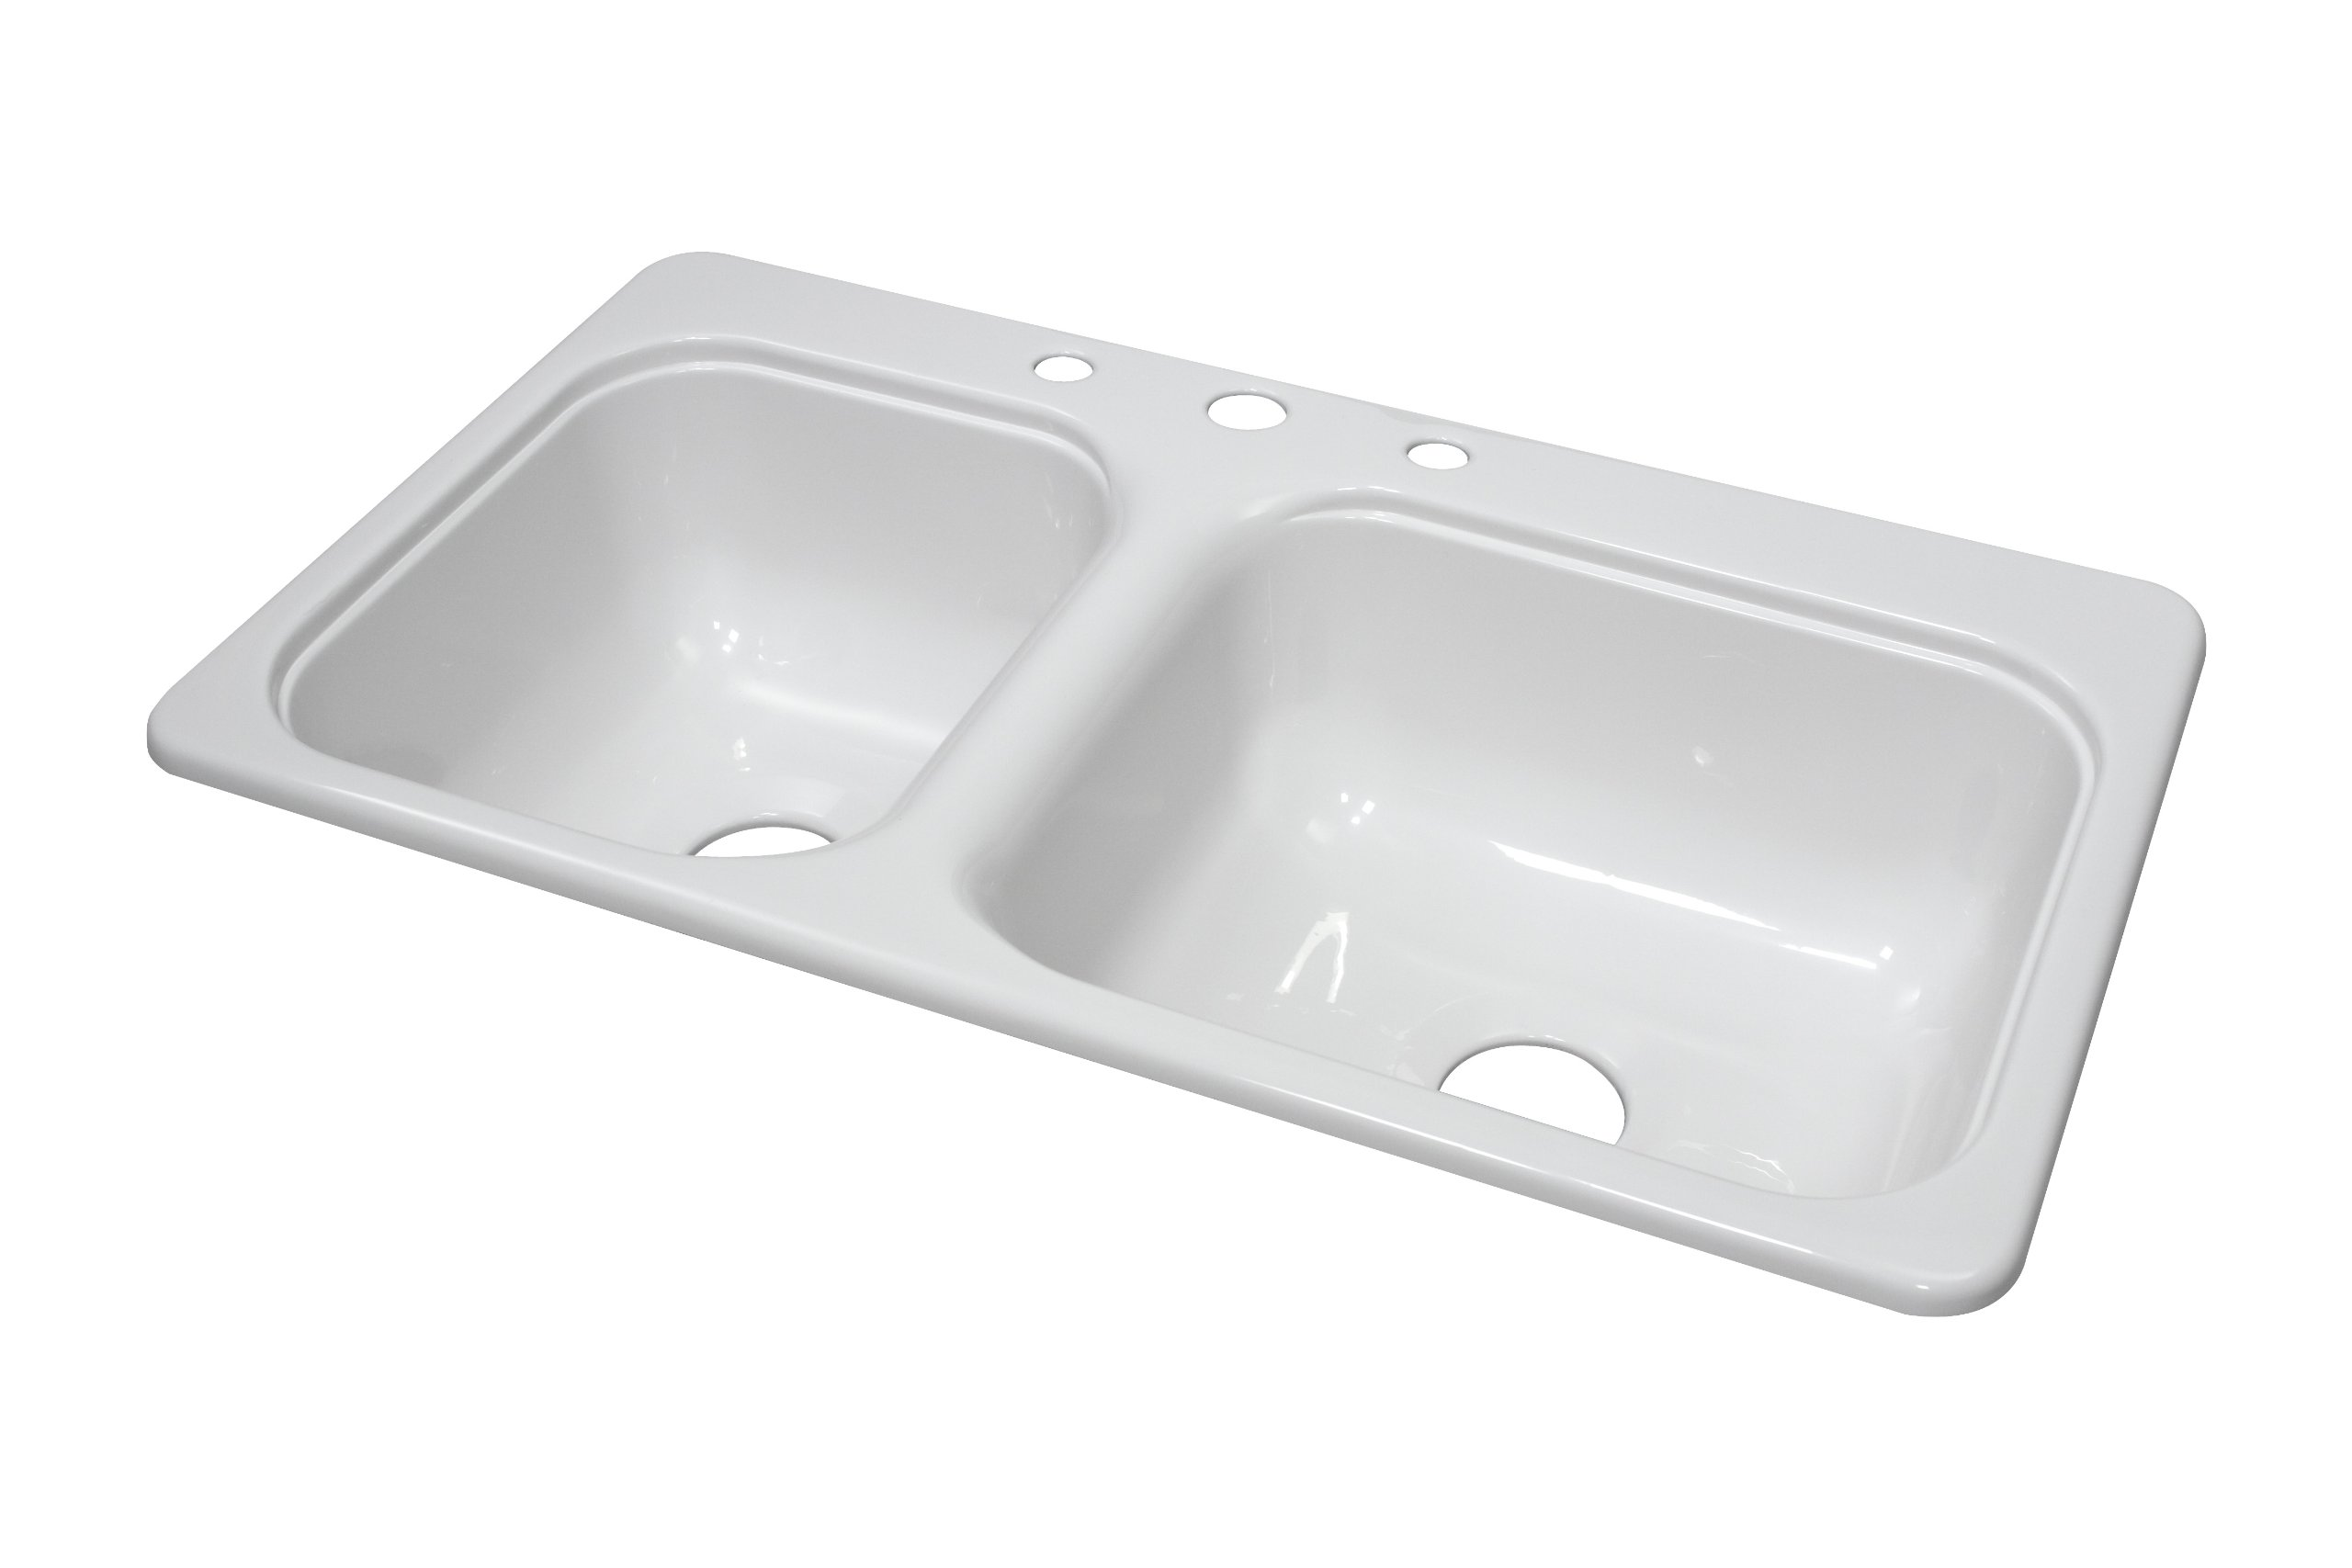 Lyons Industries DKS01CB-3.5 White 33-Inch by 19-Inch Manufactured/Mobile Home Acrylic 8-Inch Deep Kitchen Sink with Step Down Ledge, Three Hole by Lyons Industries